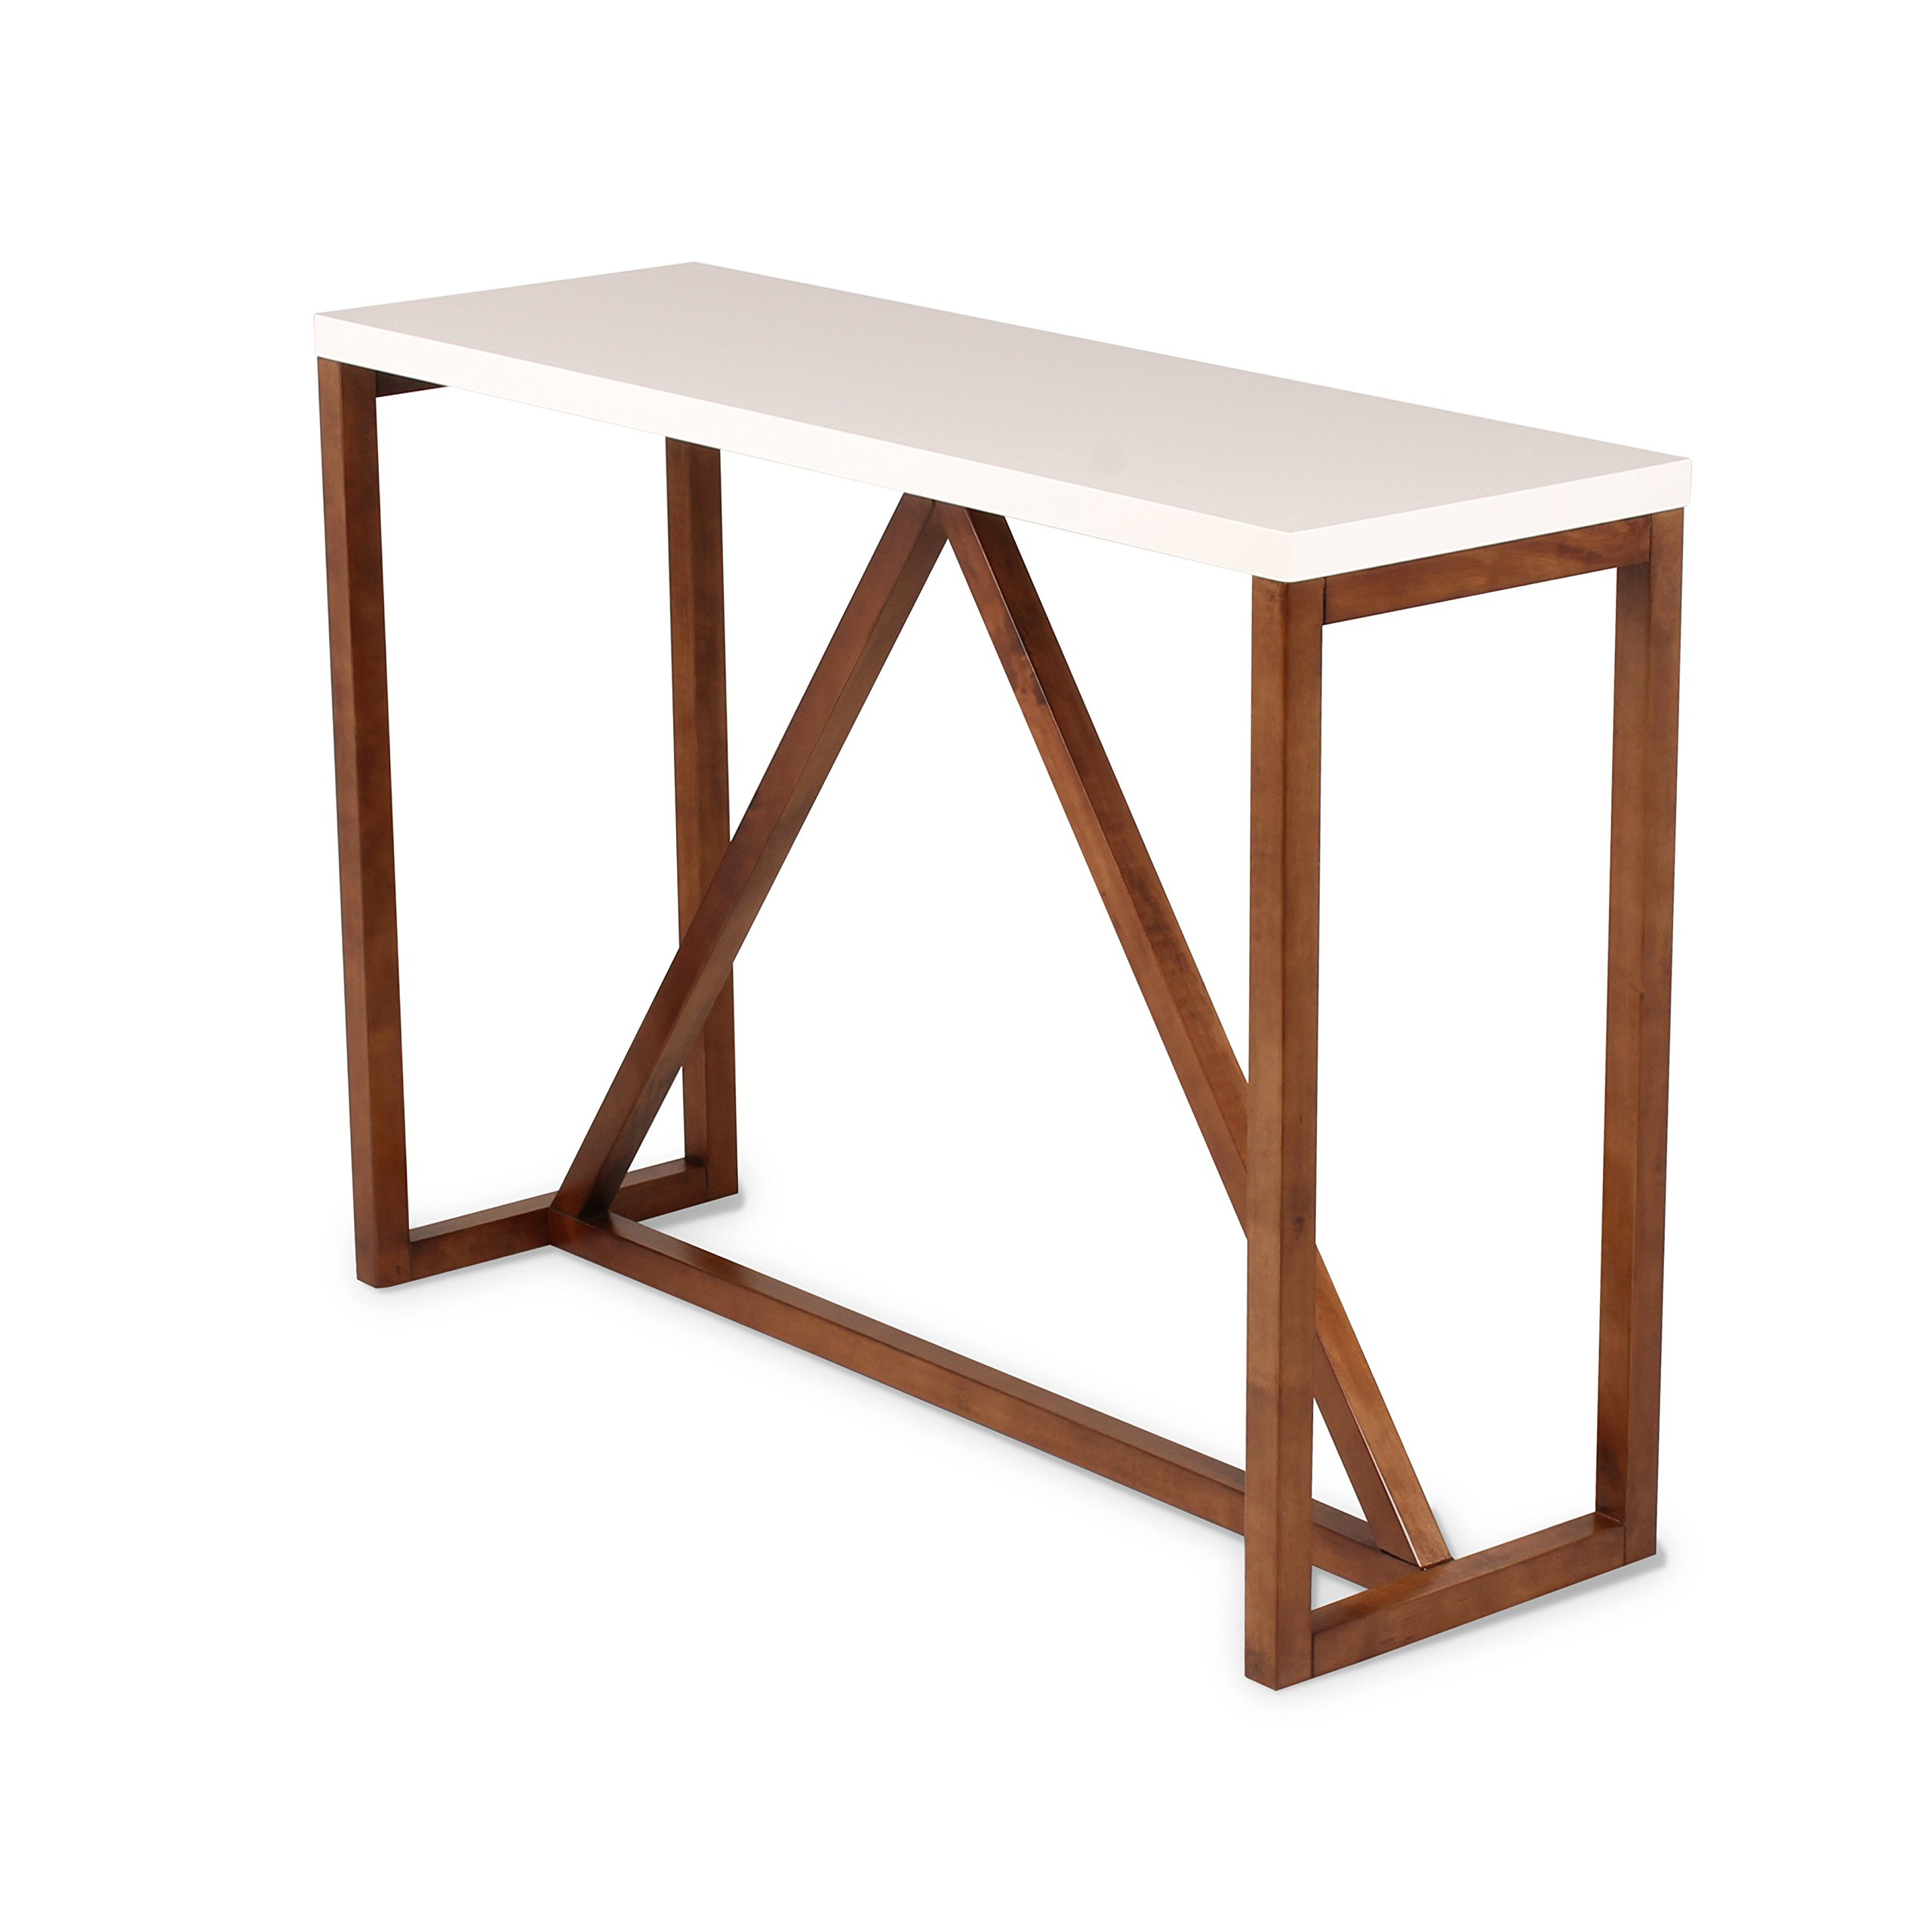 Kate and Laurel Kaya Two Console Table, 42'' x 14'' x 30'', White/Walnut Brown by Kate and Laurel